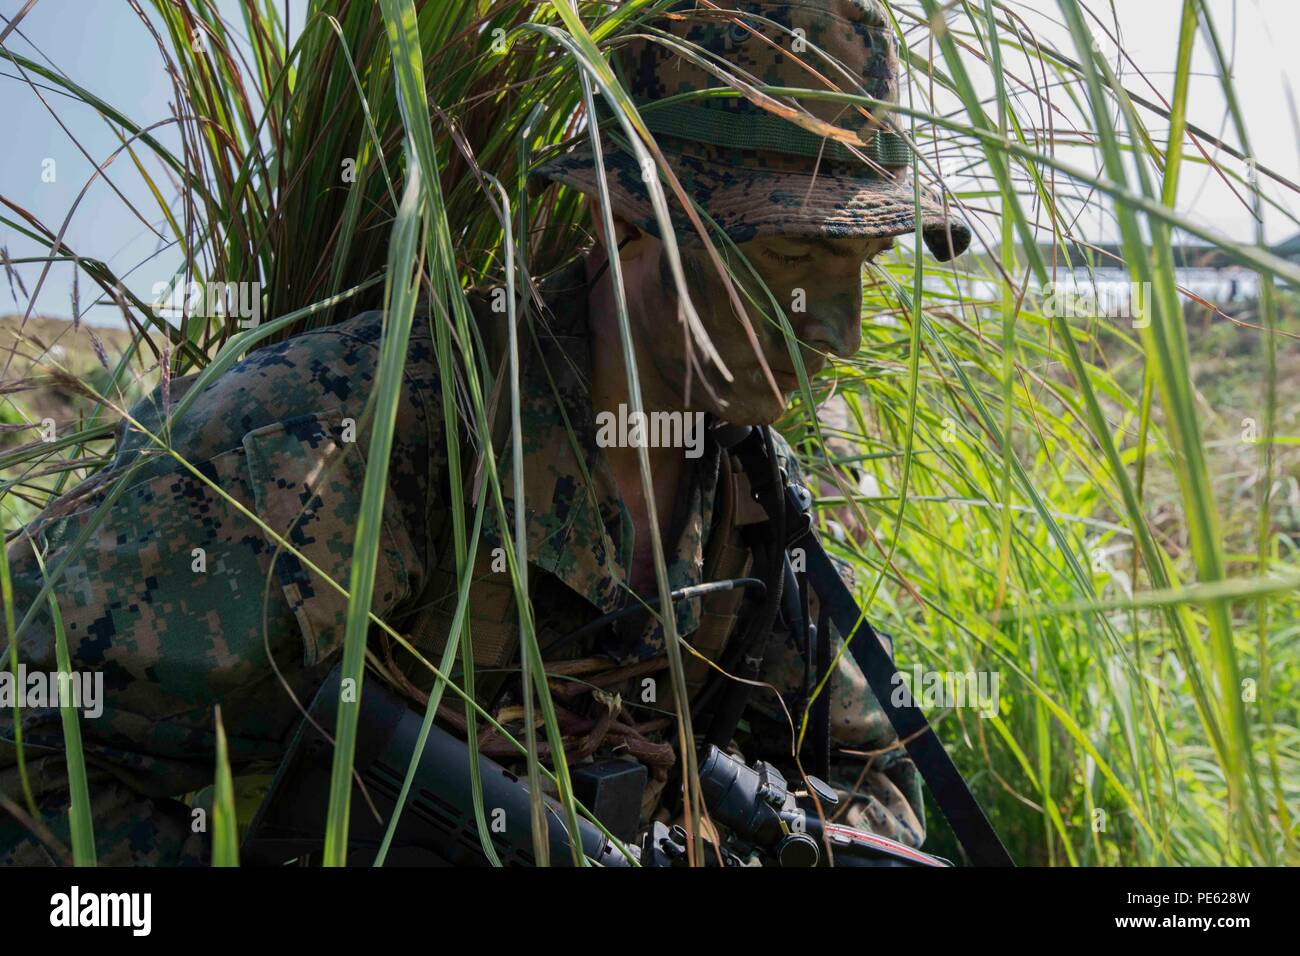 U.S. Marine Corps Cpl. Ryan W. Grim radio operator with 3rd Reconnaissance Battalion, currently attached to 3rd Marine Expeditionary Brigade, moves to consolidate with the assaulting element during an amphibious raid at Ternate, Philippines, as a part of Amphibious Landing Exercise 2015 (PHIBLEX 15), Oct. 8. PHIBLEX 15 is an annual bilateral training exercise conducted with the Armed Forces of the Philippines in order to strengthen our interoperability and working relationships across a wide range of military operations from disaster relief to complex expeditionary operations. (U.S. Marine Cor Stock Photo